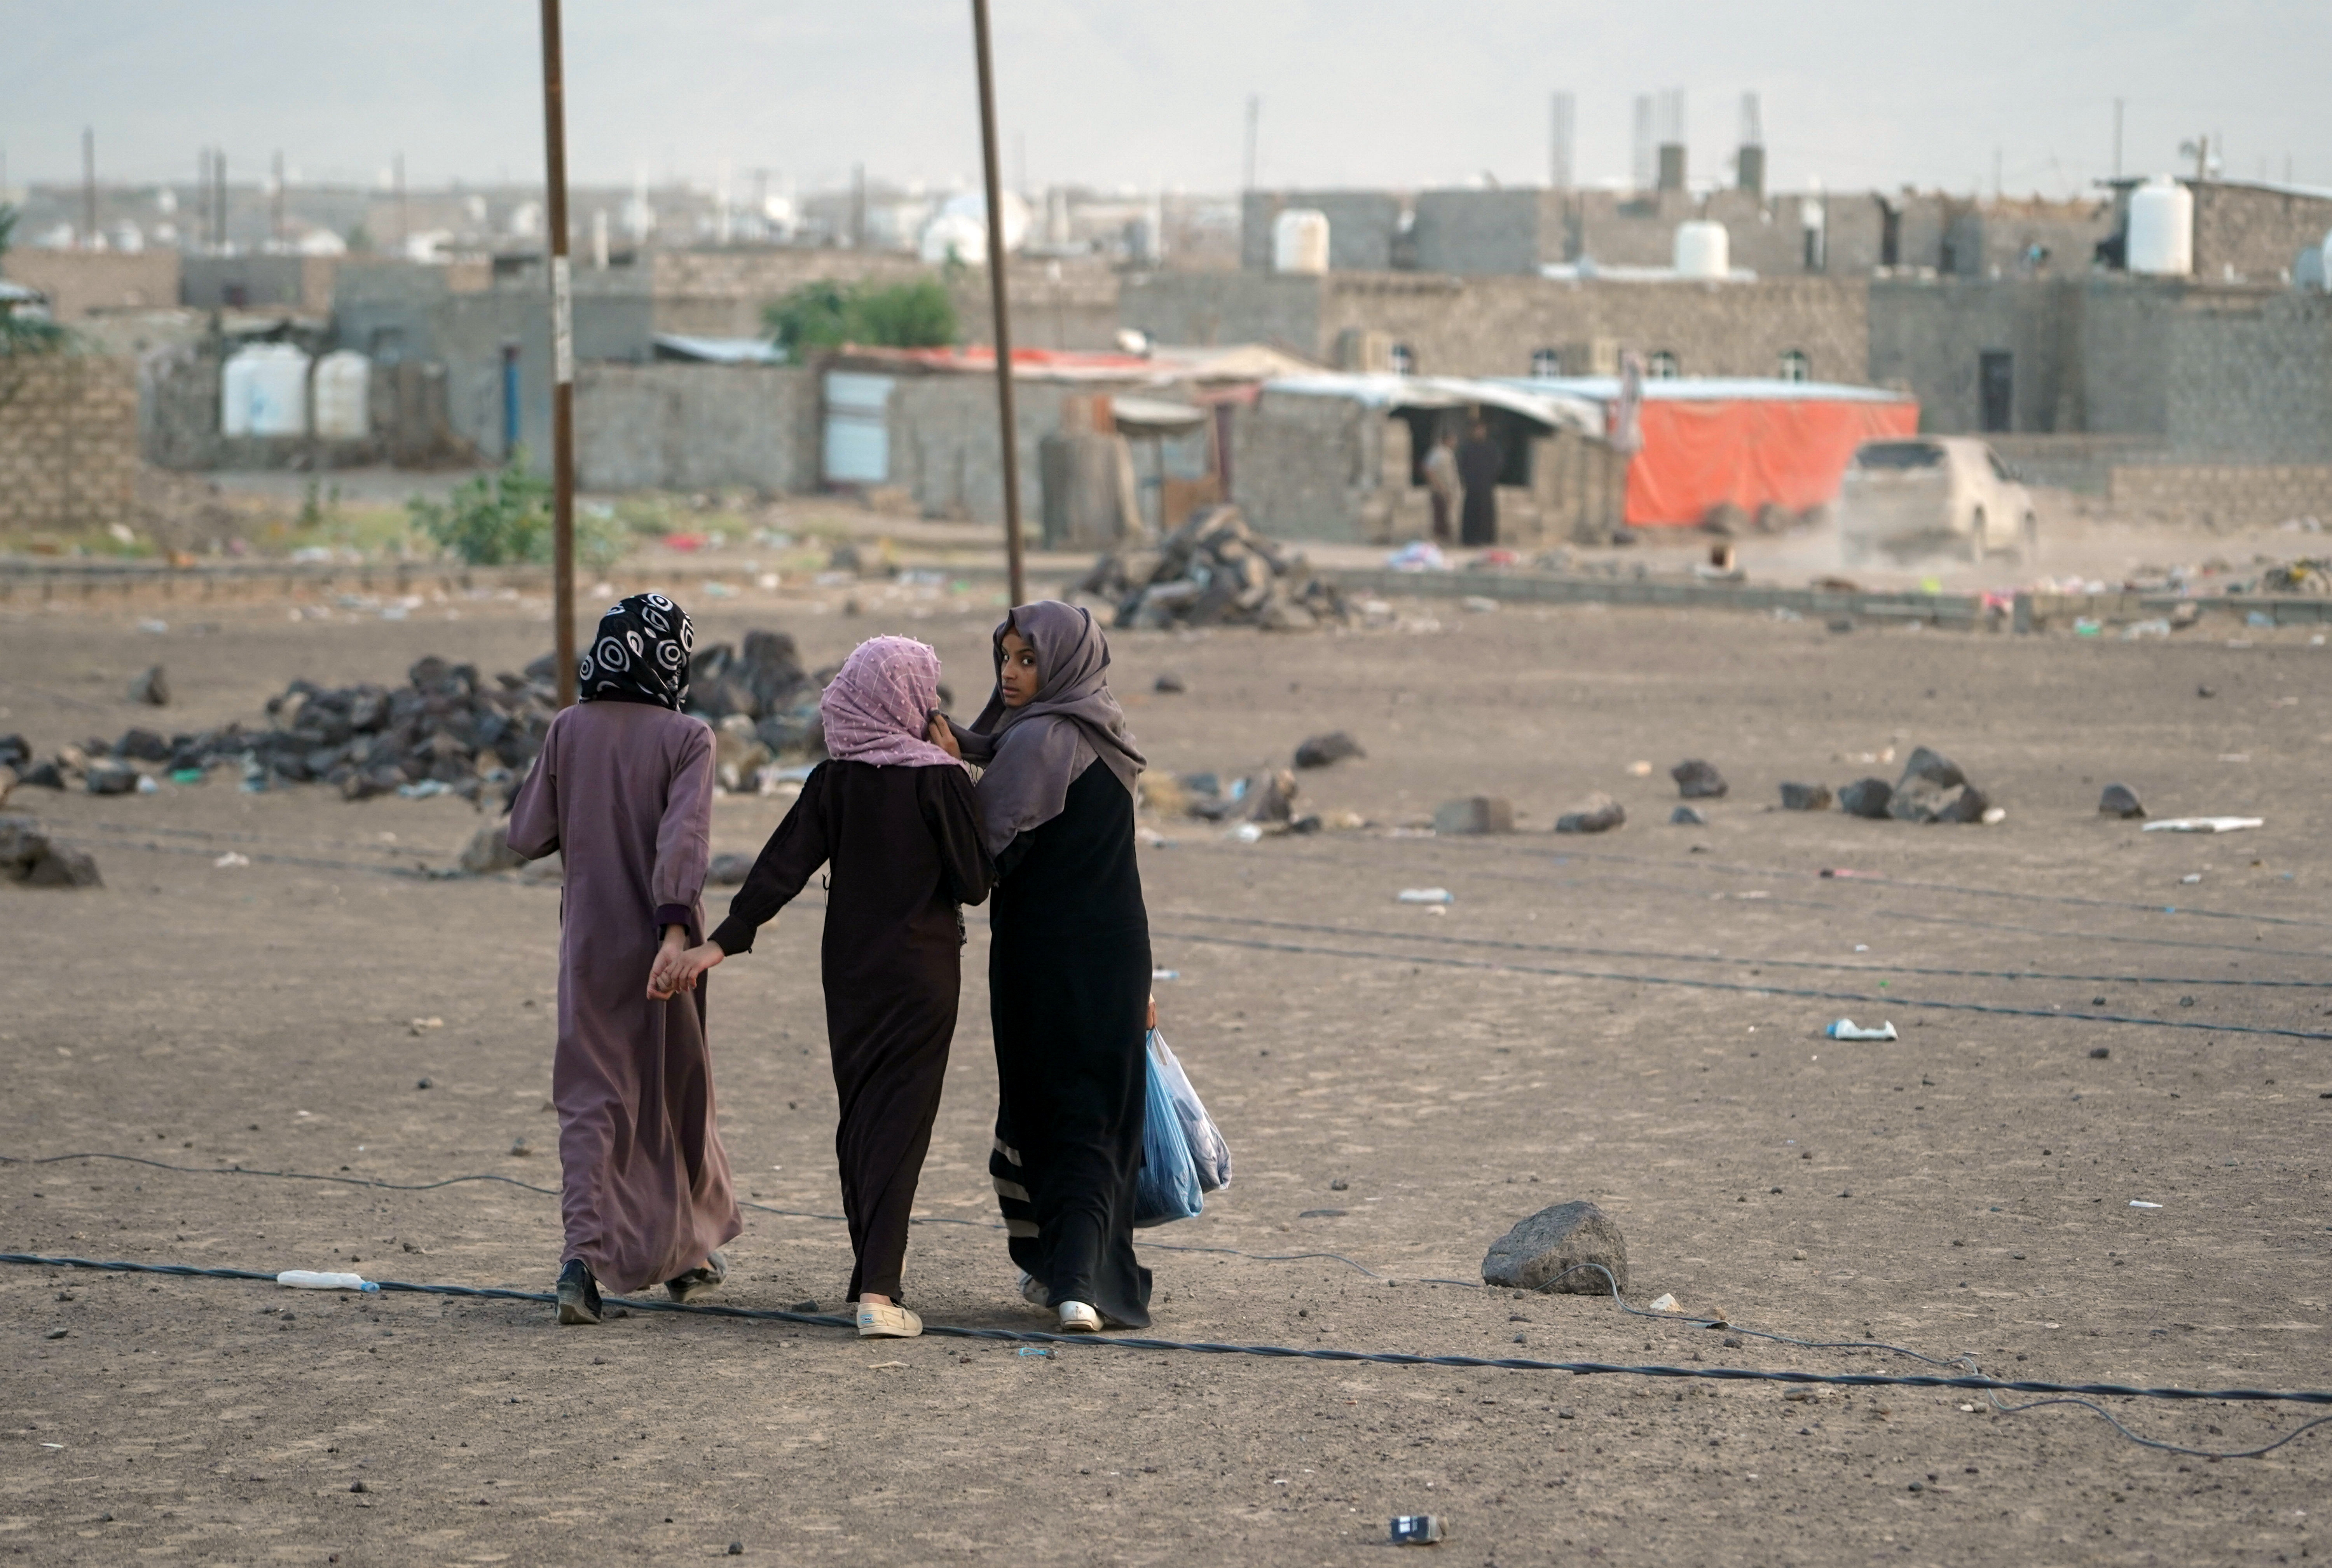 Girls walk at a makeshift camp for internally displaced people (IDPs) in the oil-producing Marib province, Yemen May 9, 2021. REUTERS/Nabeel al-Awzari